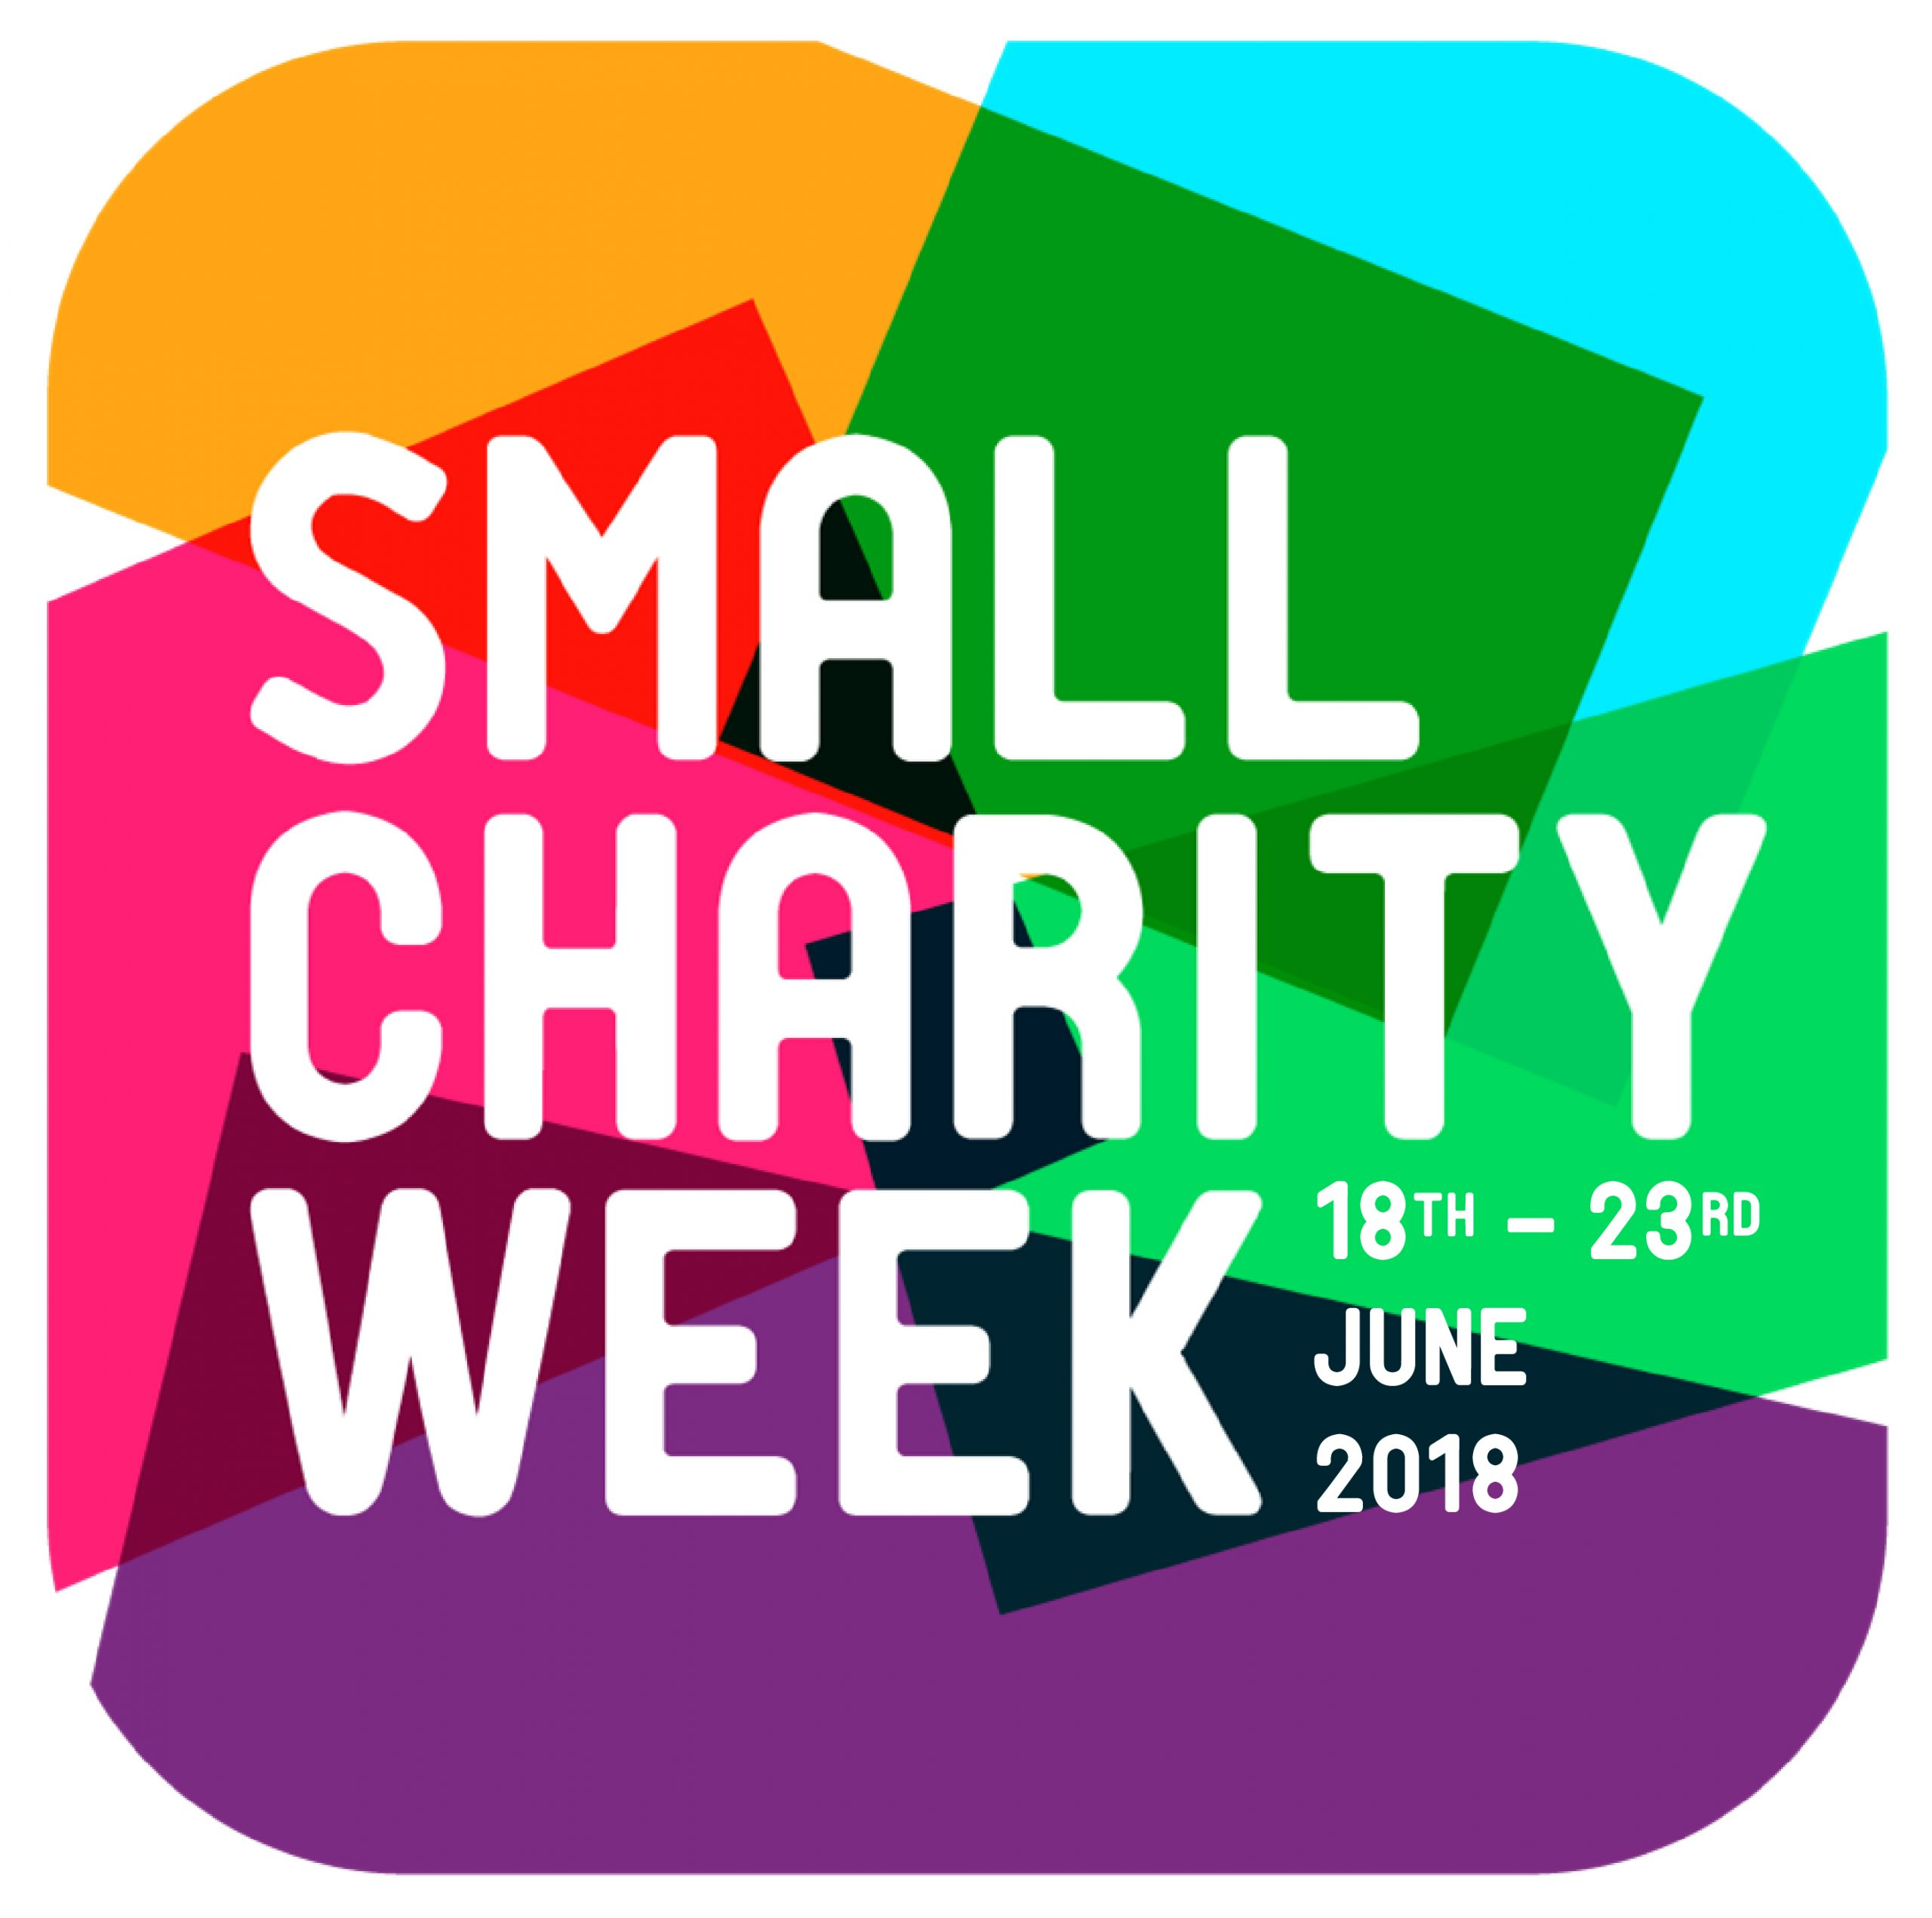 Burning Nights CRPS Support charity will be once again taking part on Small Charity Week 2018. Why not consider fundraising for us or helping us to raise awareness of Complex Regional Pain Syndrome (CRPS) by sharing our social media posts?